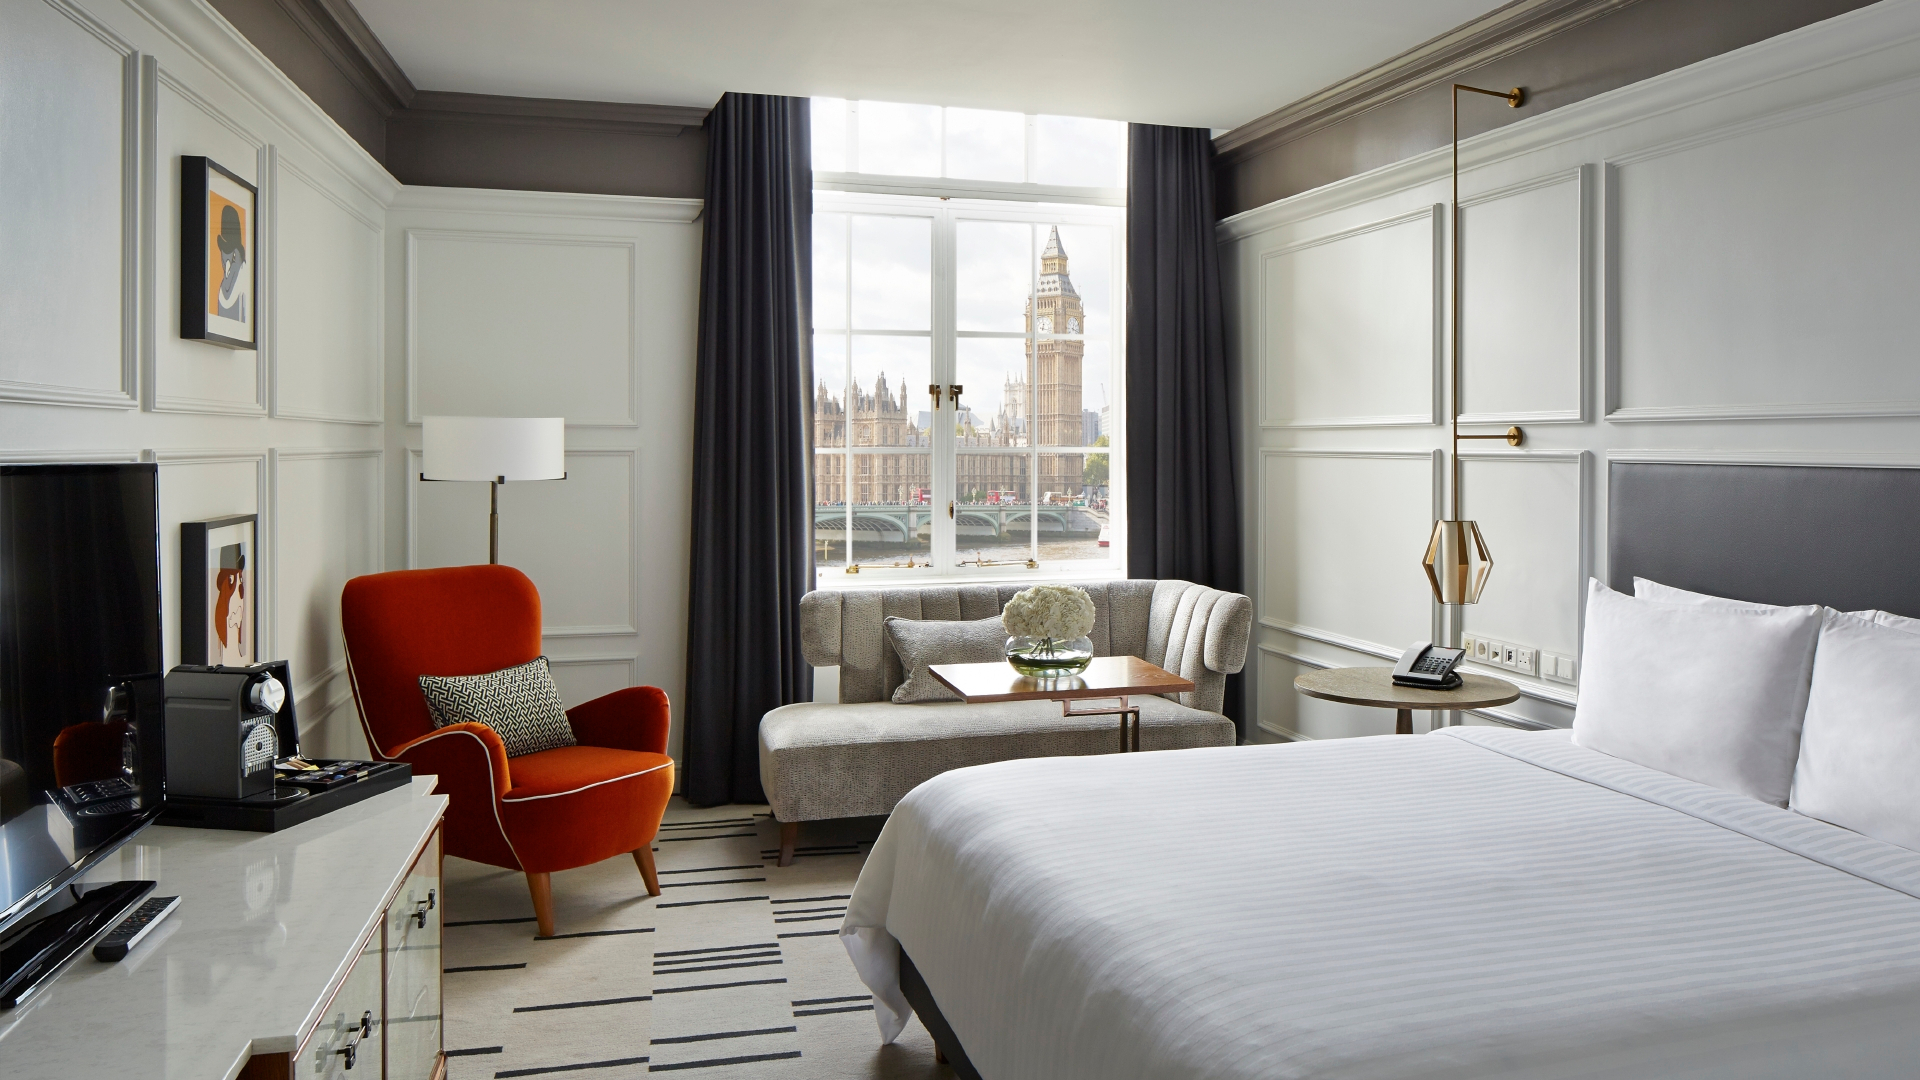 Luxury hotel room with white bedding, red chair, black curtains and view of Big Ben and Parliament.